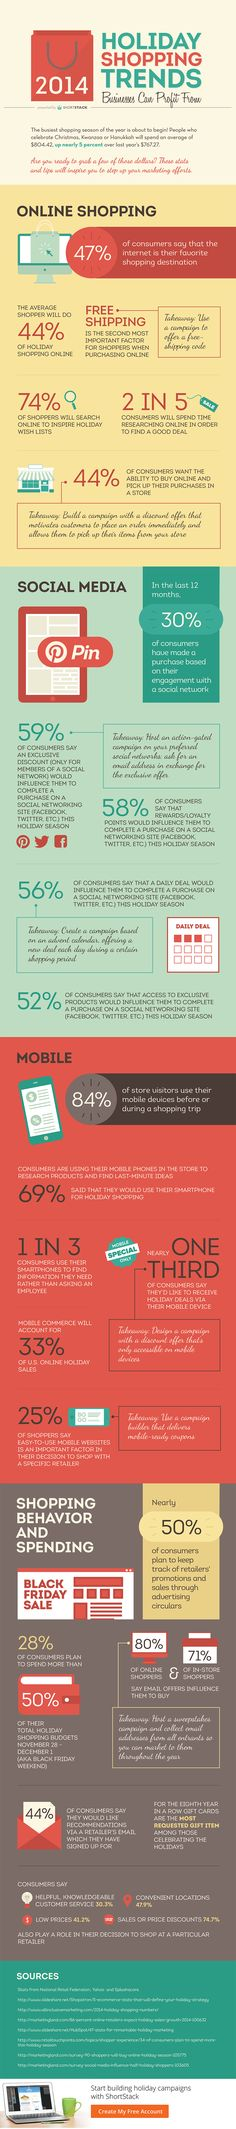 Tips for Running an Awesome Holiday Marketing Campaign #infographic via @entmagazine